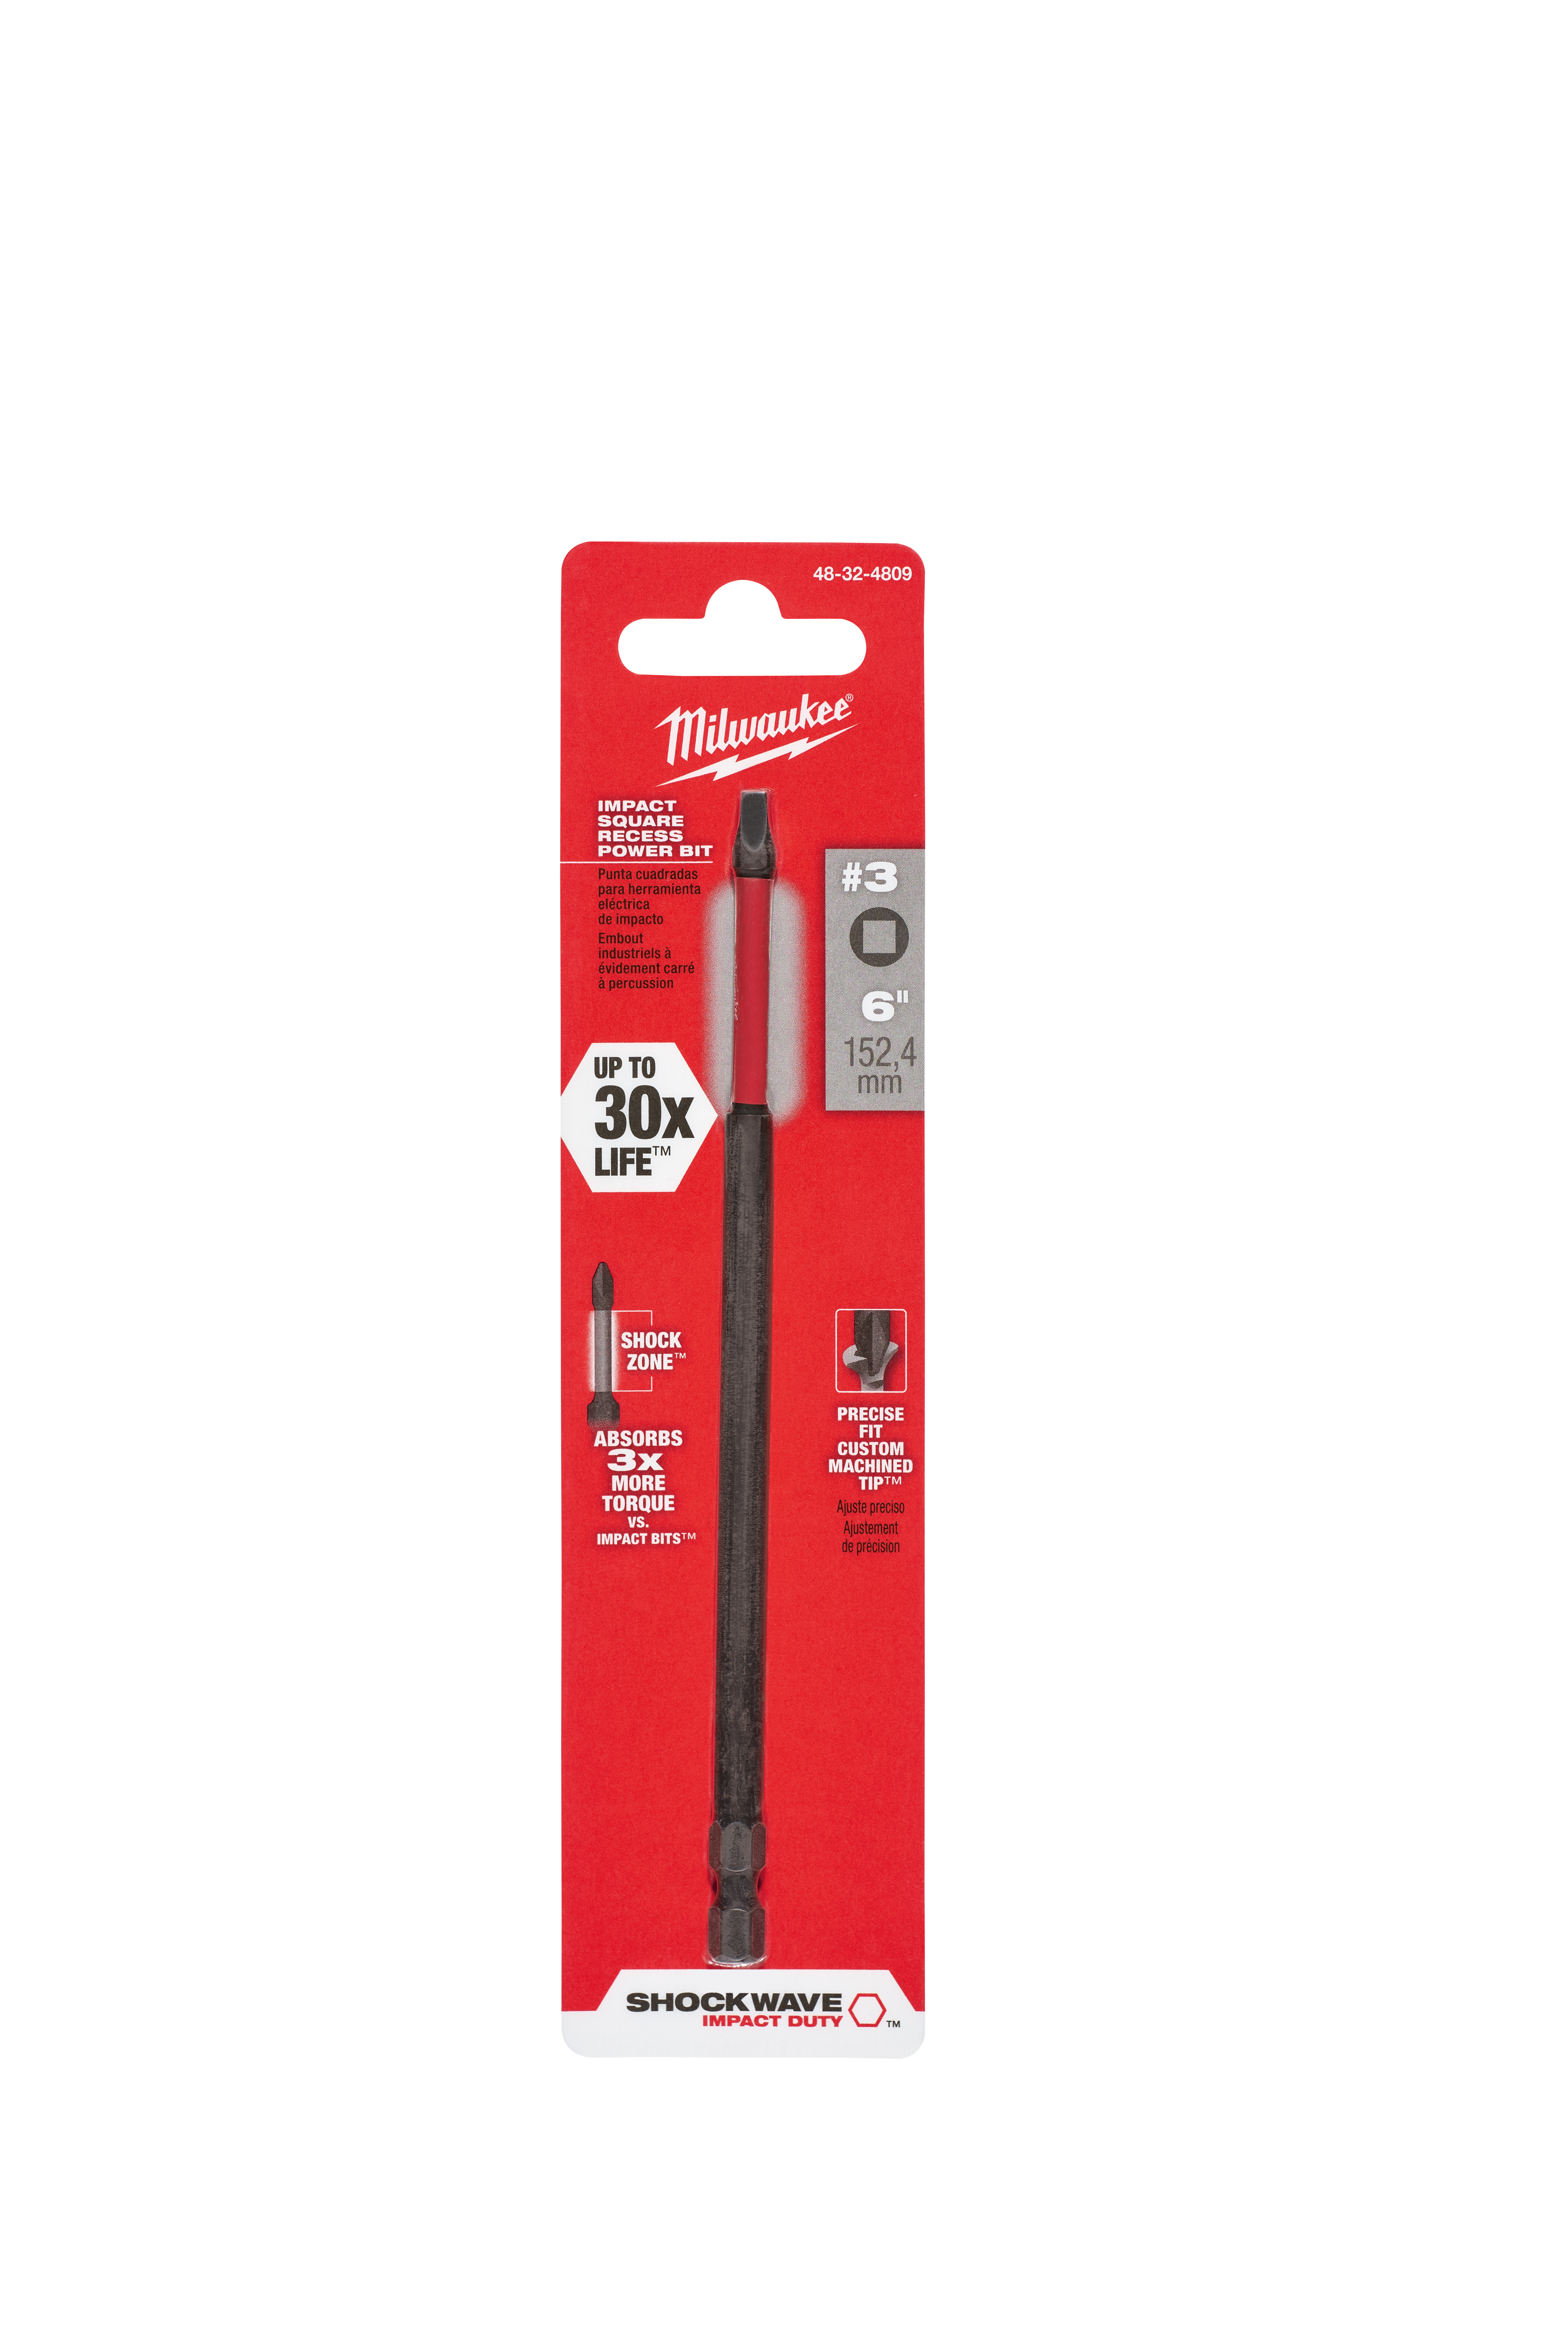 Milwaukee® SHOCKWAVE™ 48-32-4809 Magnetic Single Ended Standard Power Bit, SQ3 Square Recessed Point, 6 in OAL